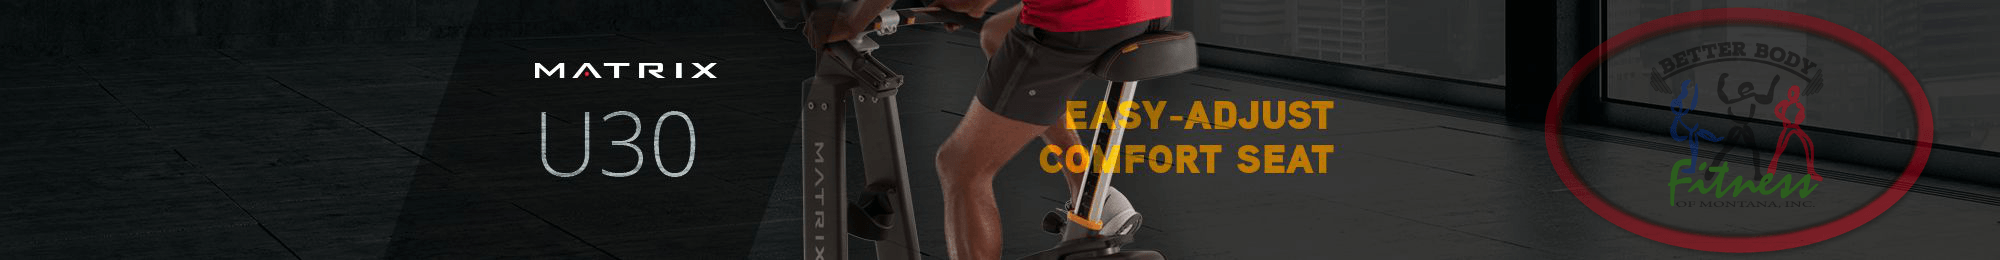 matrix_fitness_u30_upright_bike_banner